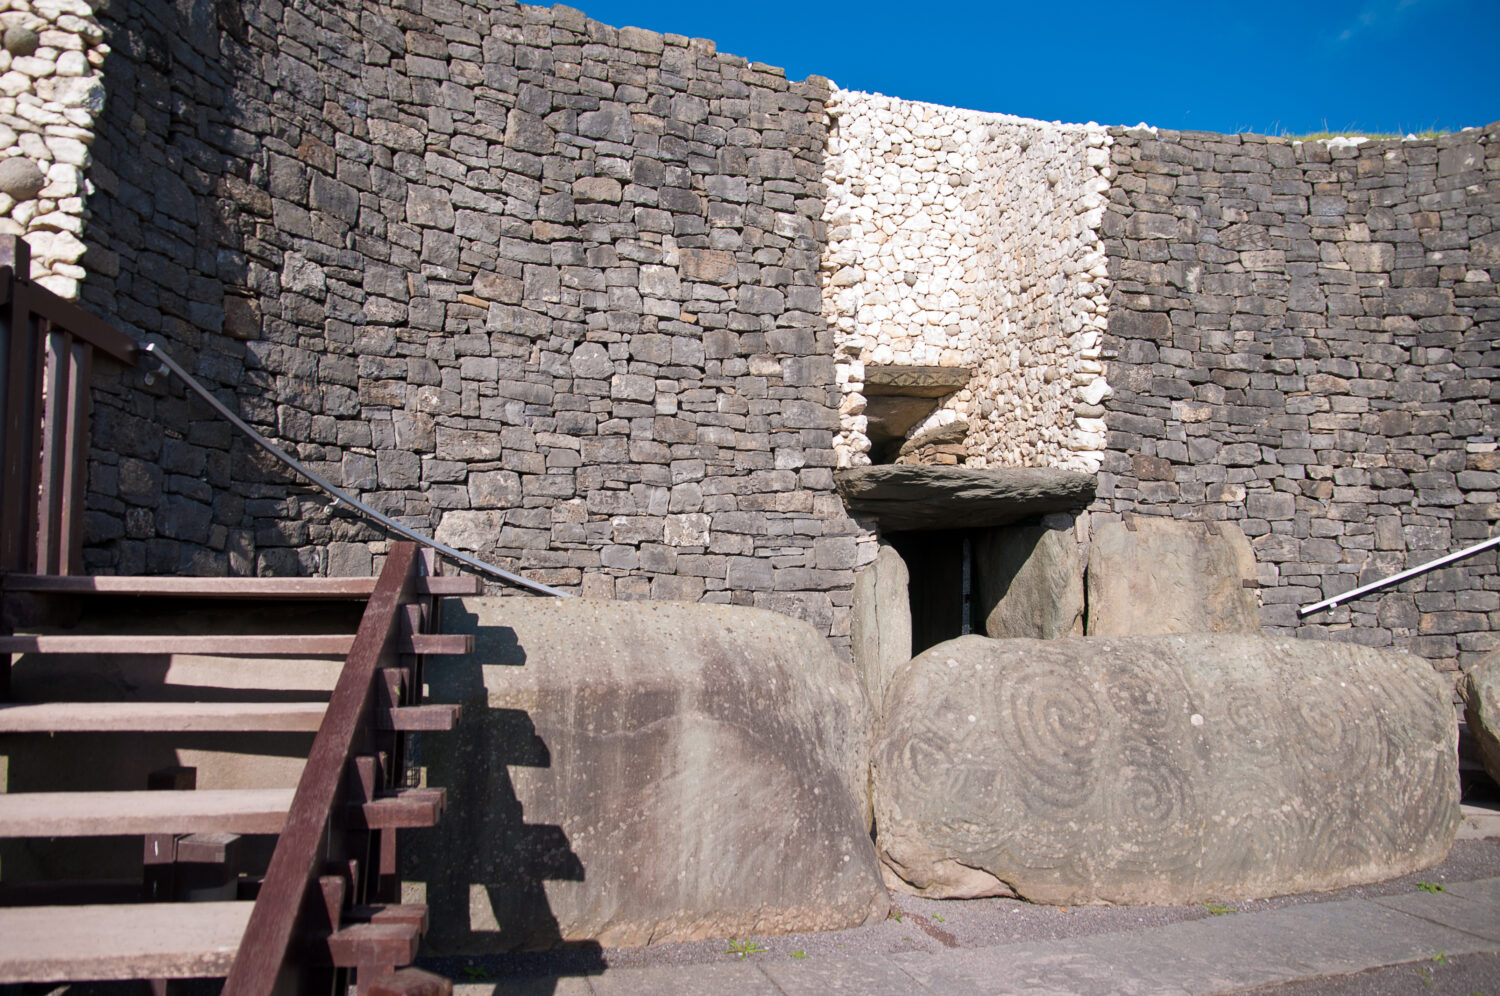 Newgrange Irish passage tomb entrance stone, Ireland.